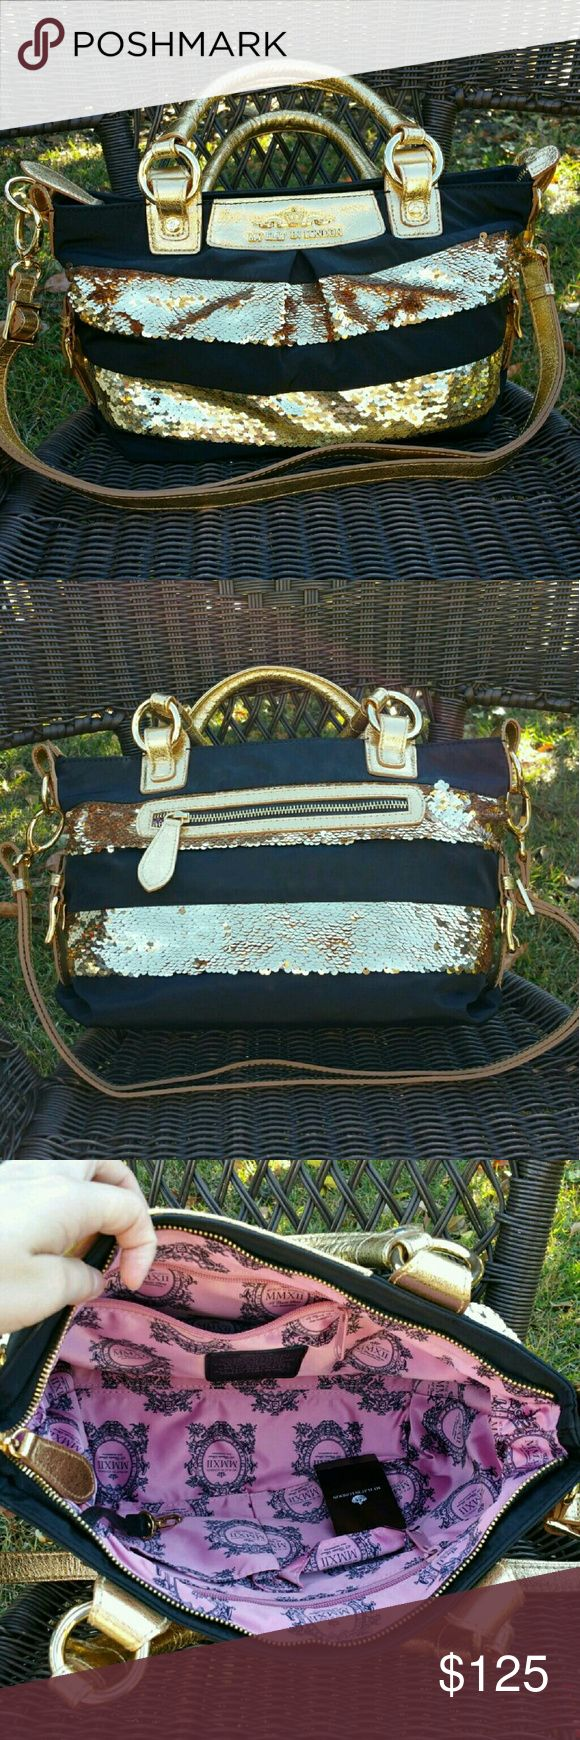 Brighton My Flat in London Gold Briget Pre owned In Excellent Condition Brighton My Flat In London Bridget Handbag with White Brighton Dust Cover. Handbag is like new.  No international shipping, only US.  Comes from non smoking home.  Please ask any questions. Brighton Bags Shoulder Bags